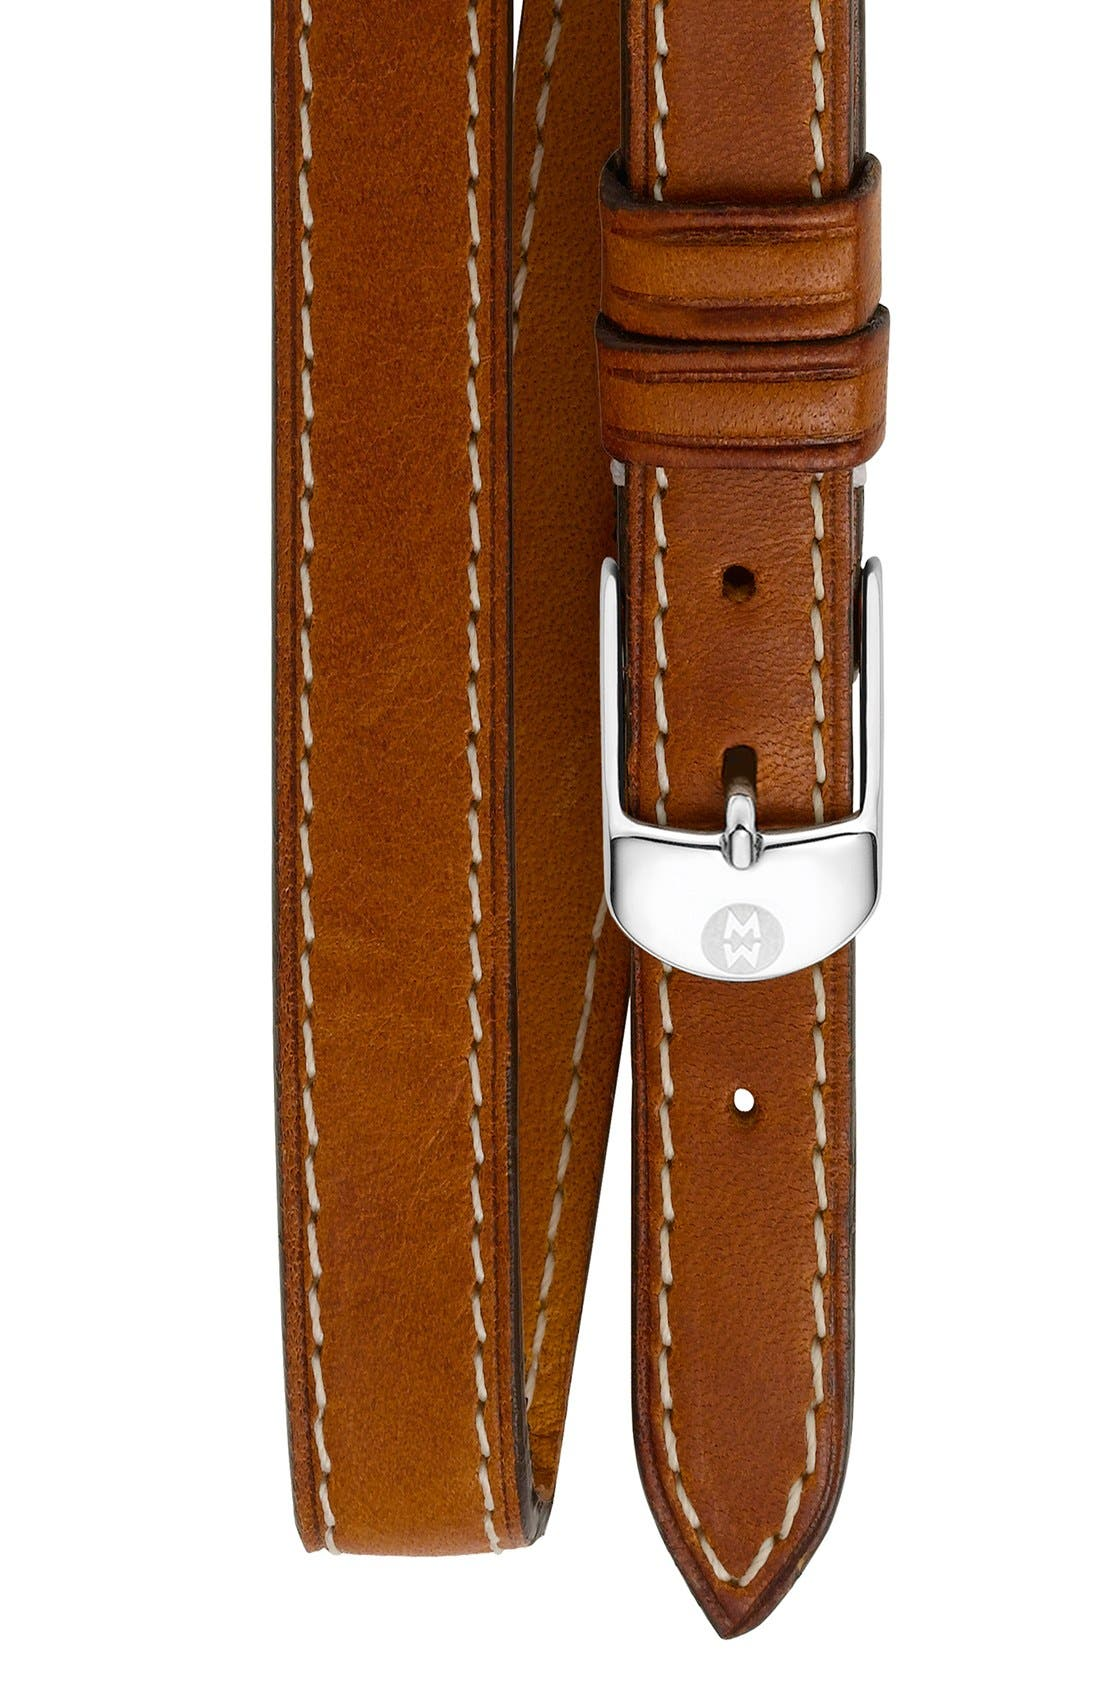 12mm Leather Double Wrap Watch Strap,                         Main,                         color, Saddle